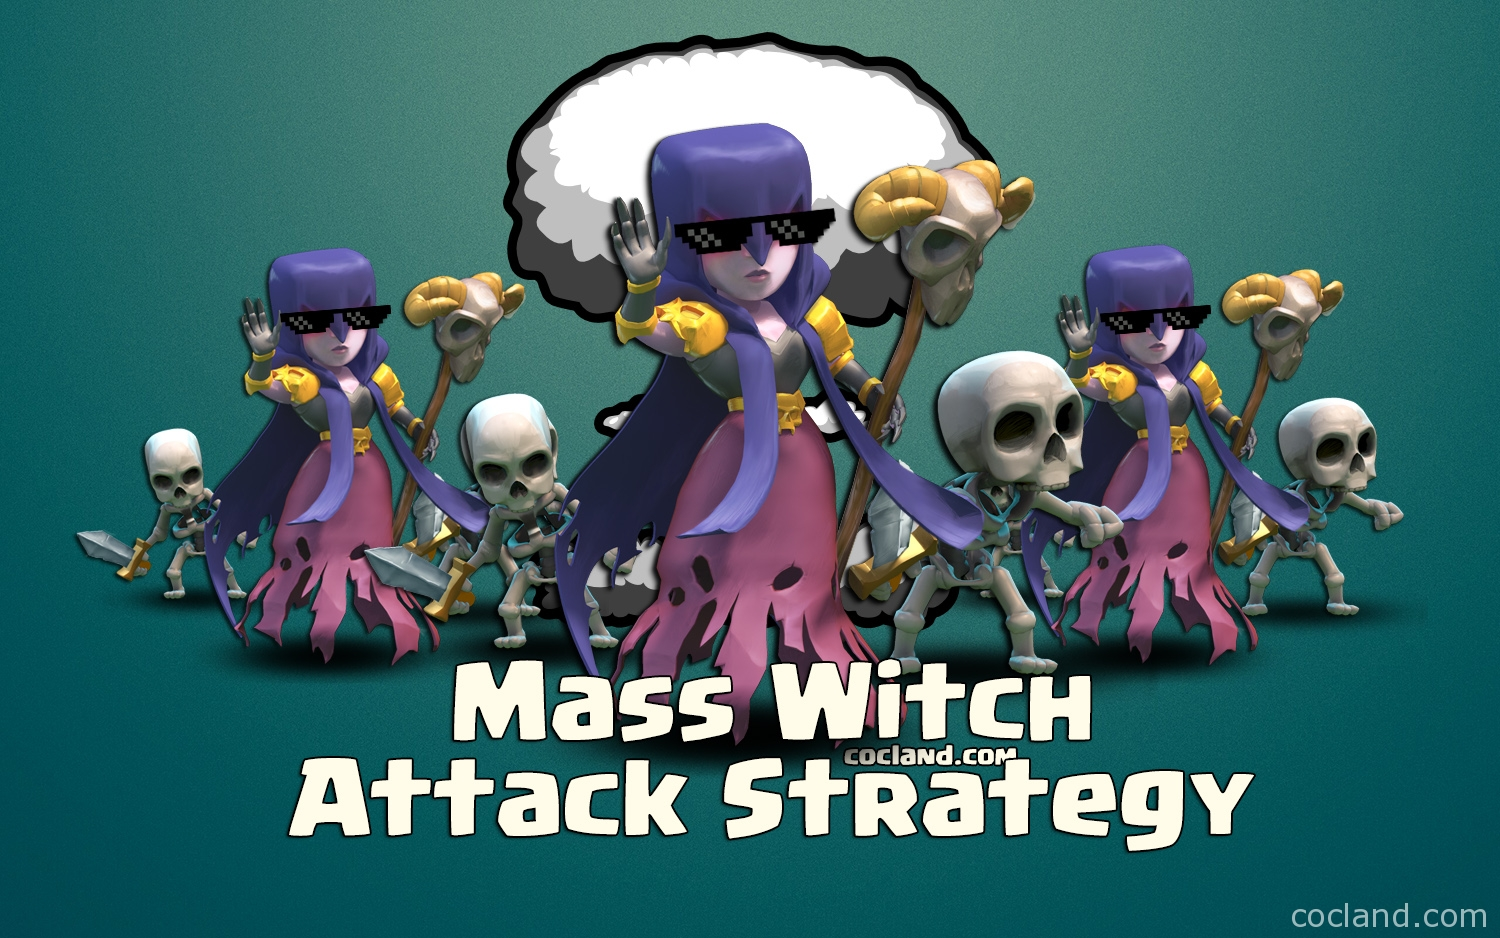 Mass Witch Attack Strategy